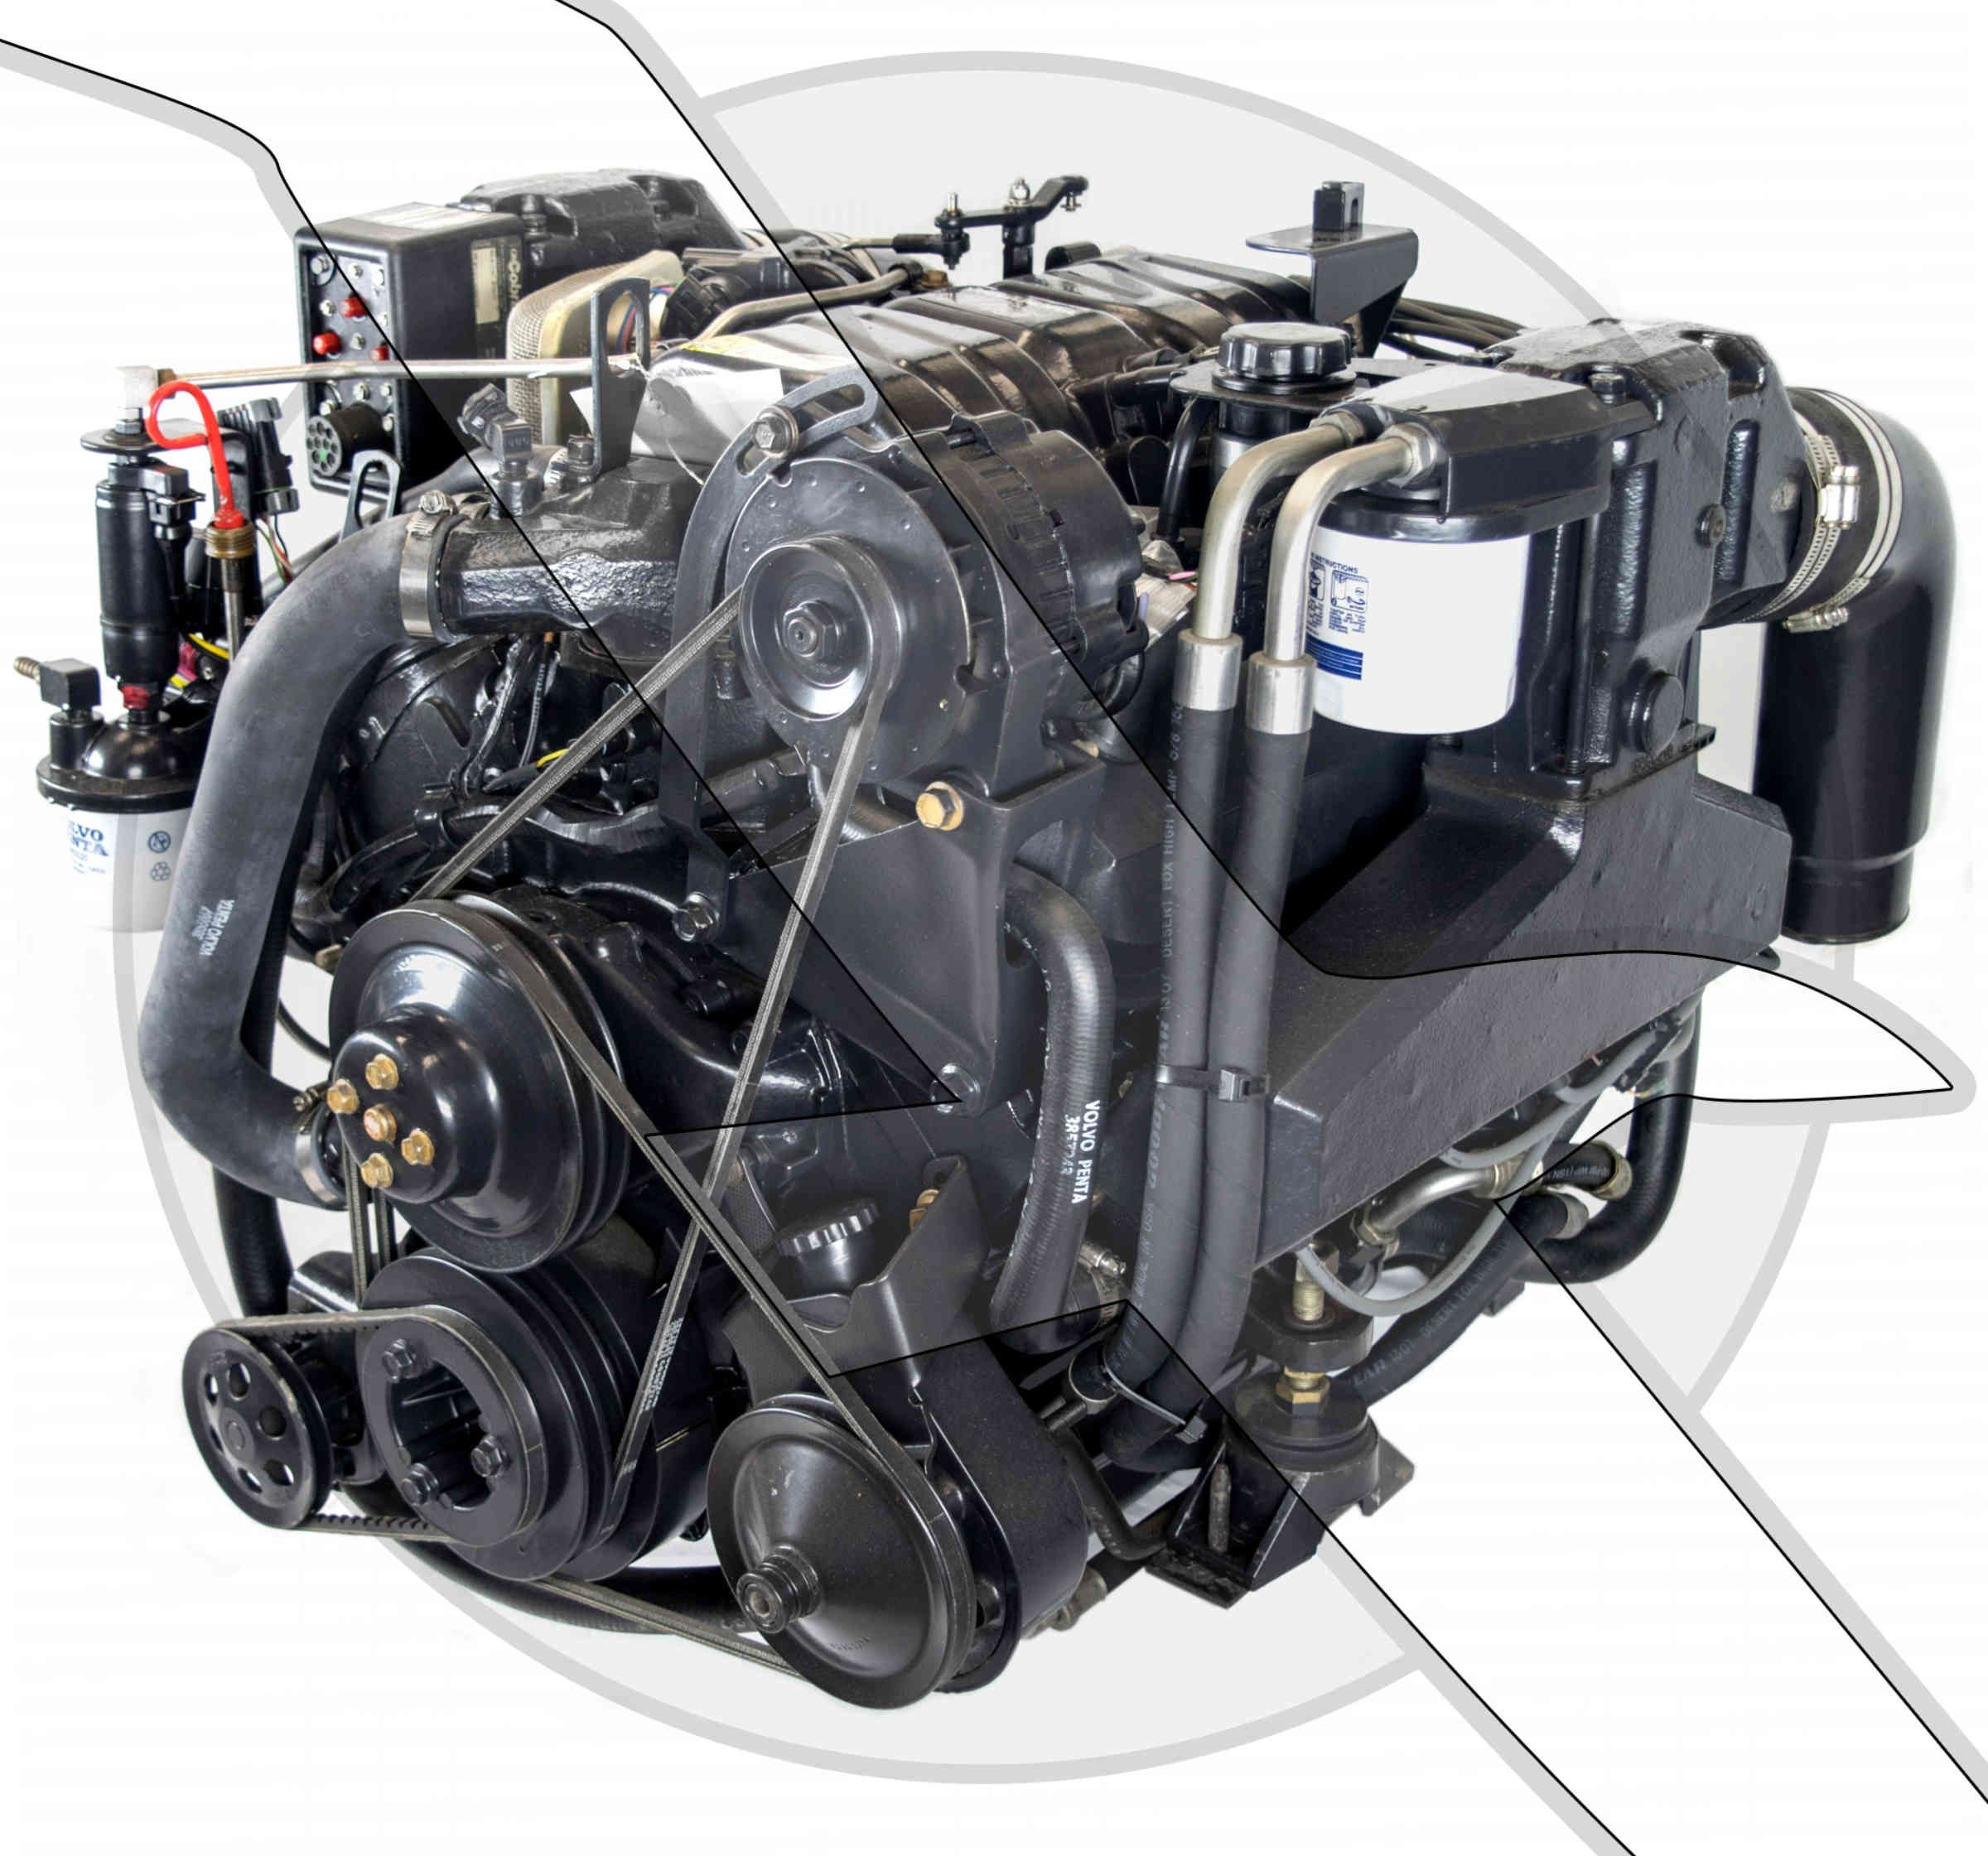 Volvo Penta 7 4L 454 Gi Fuel Injected Engine